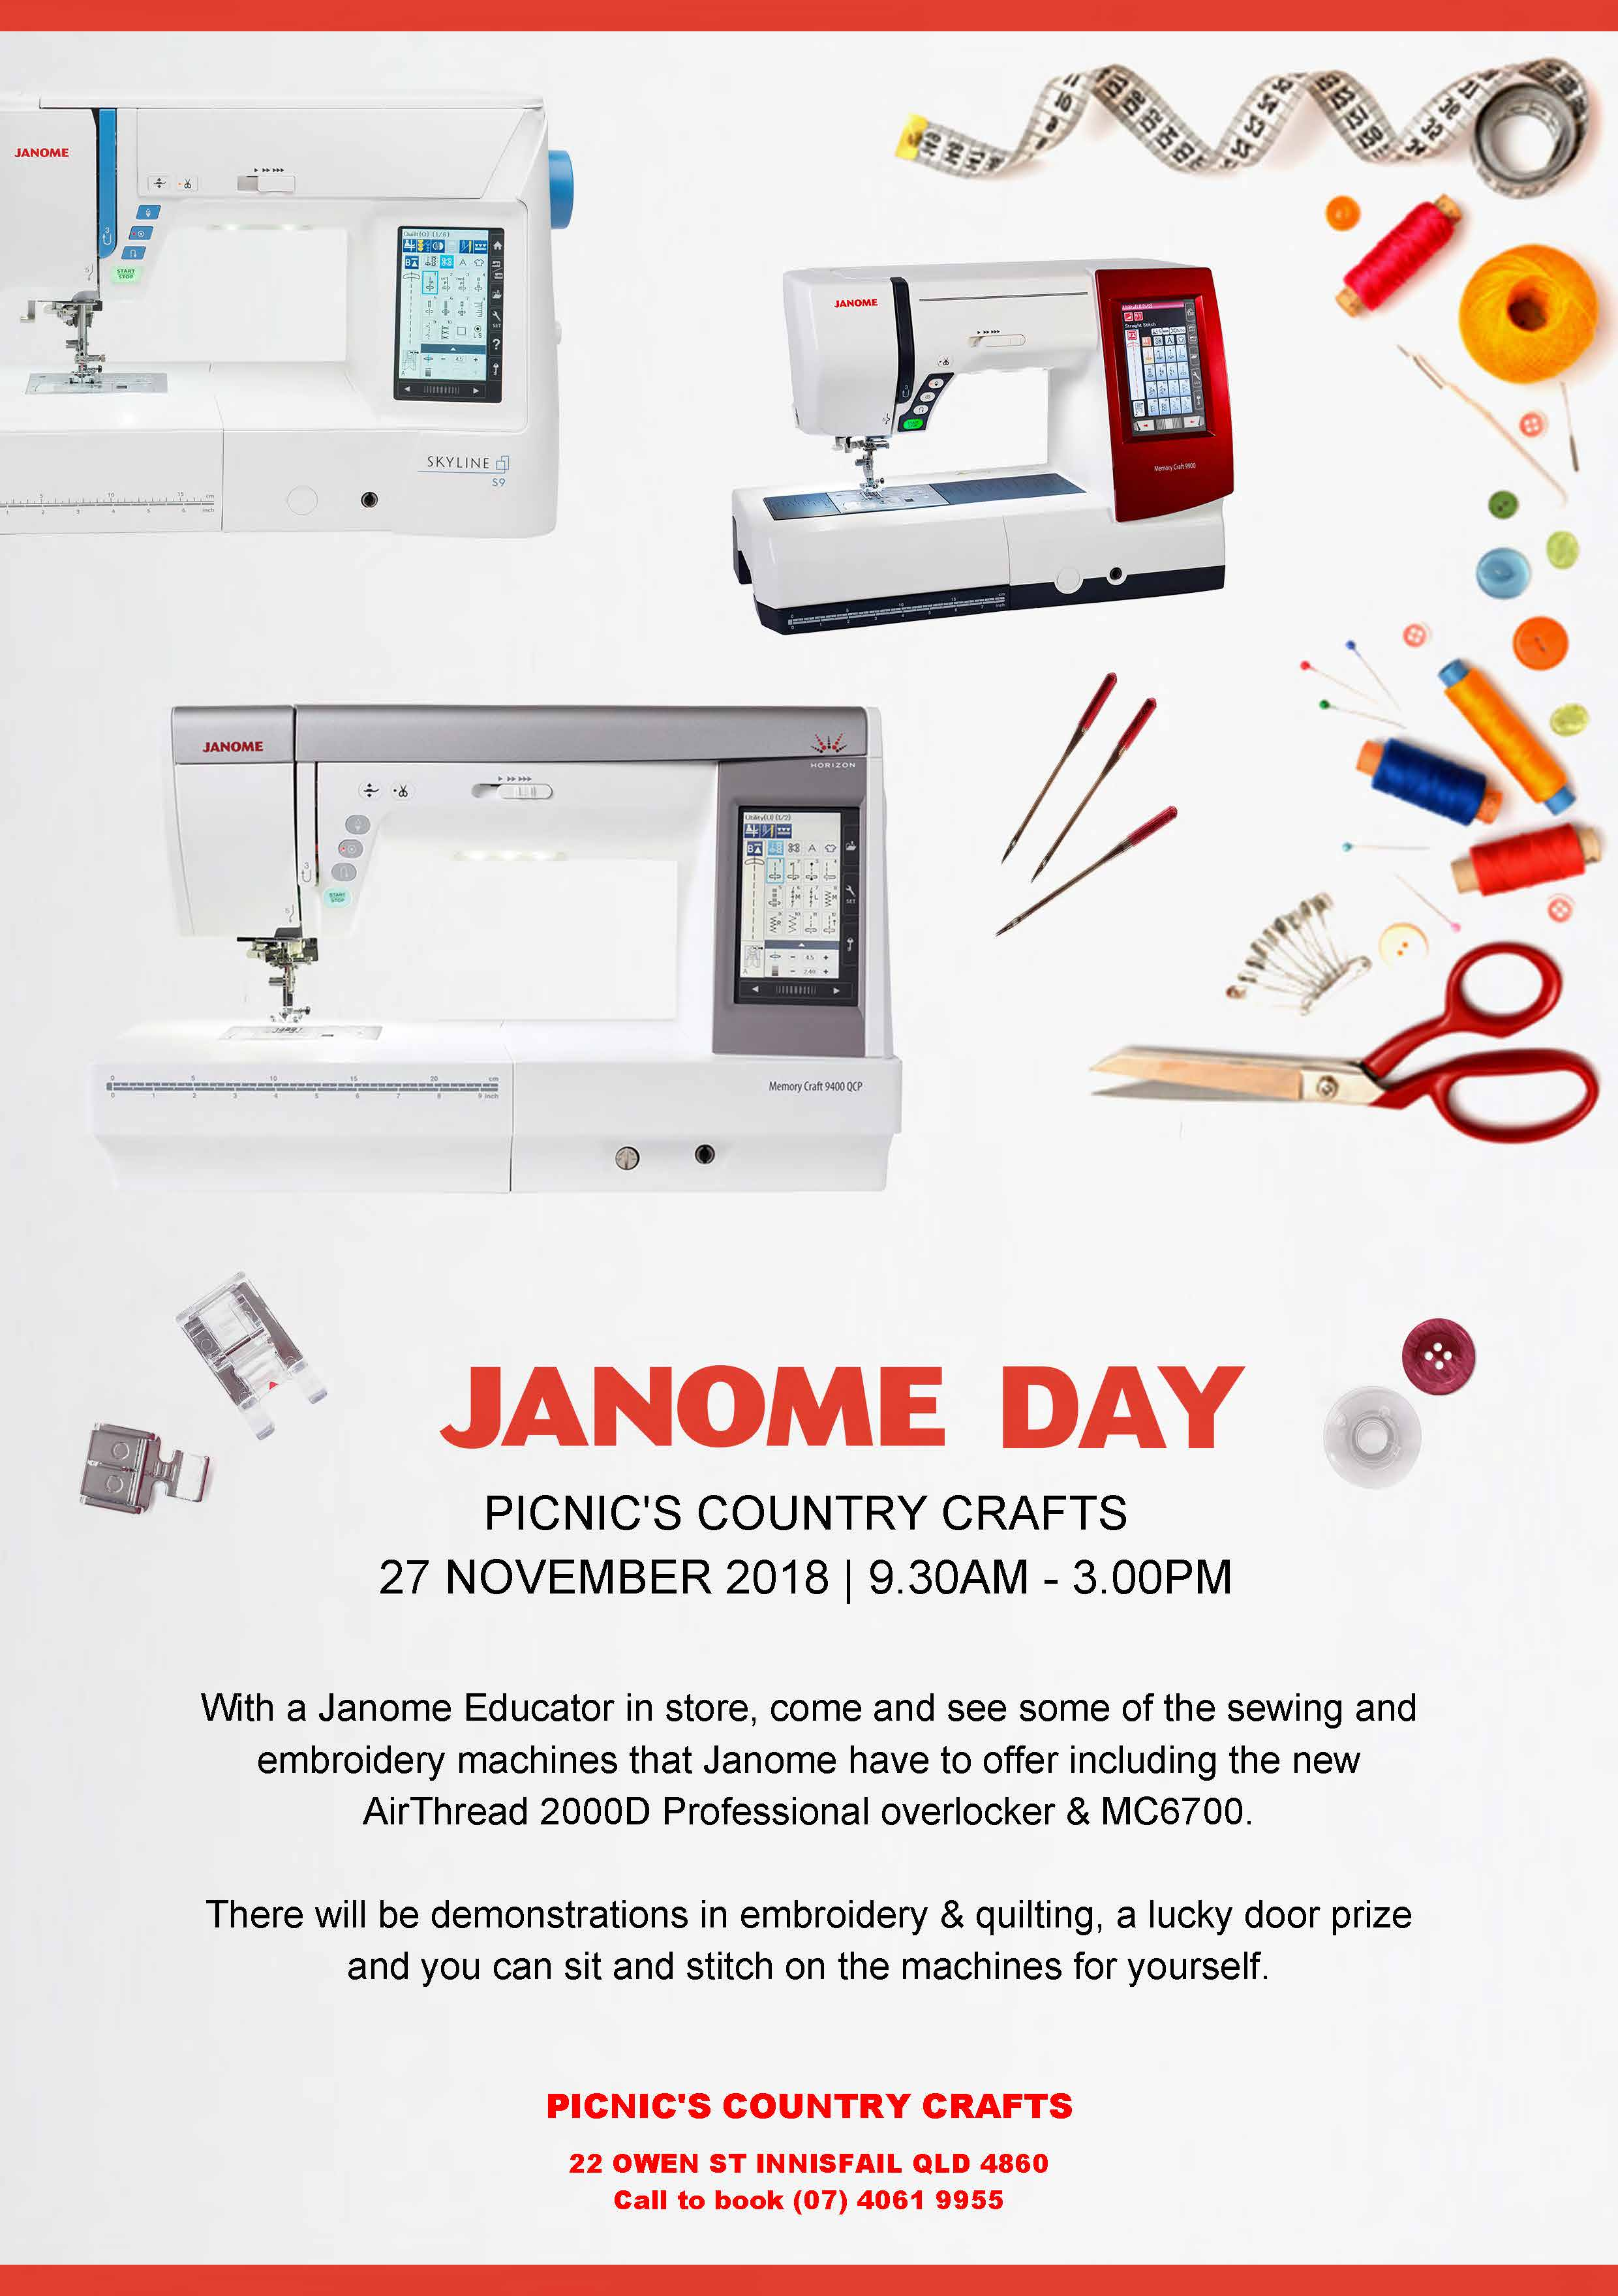 Janome Day